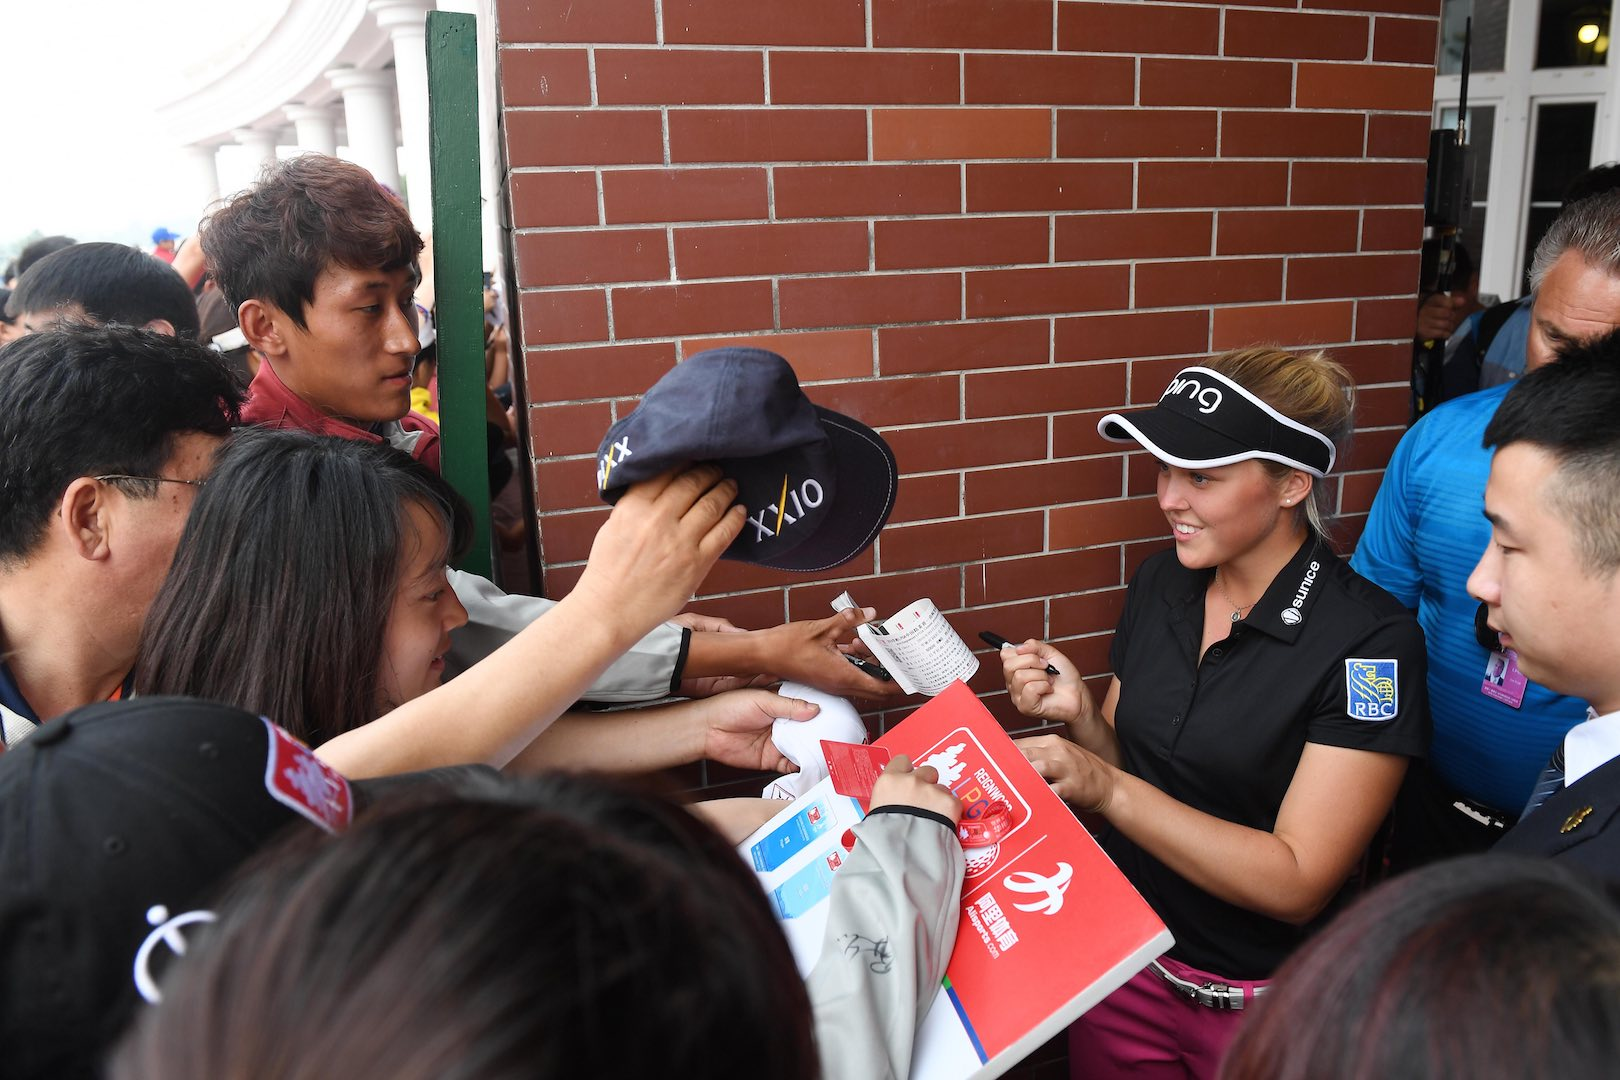 Chasing the golf autograph